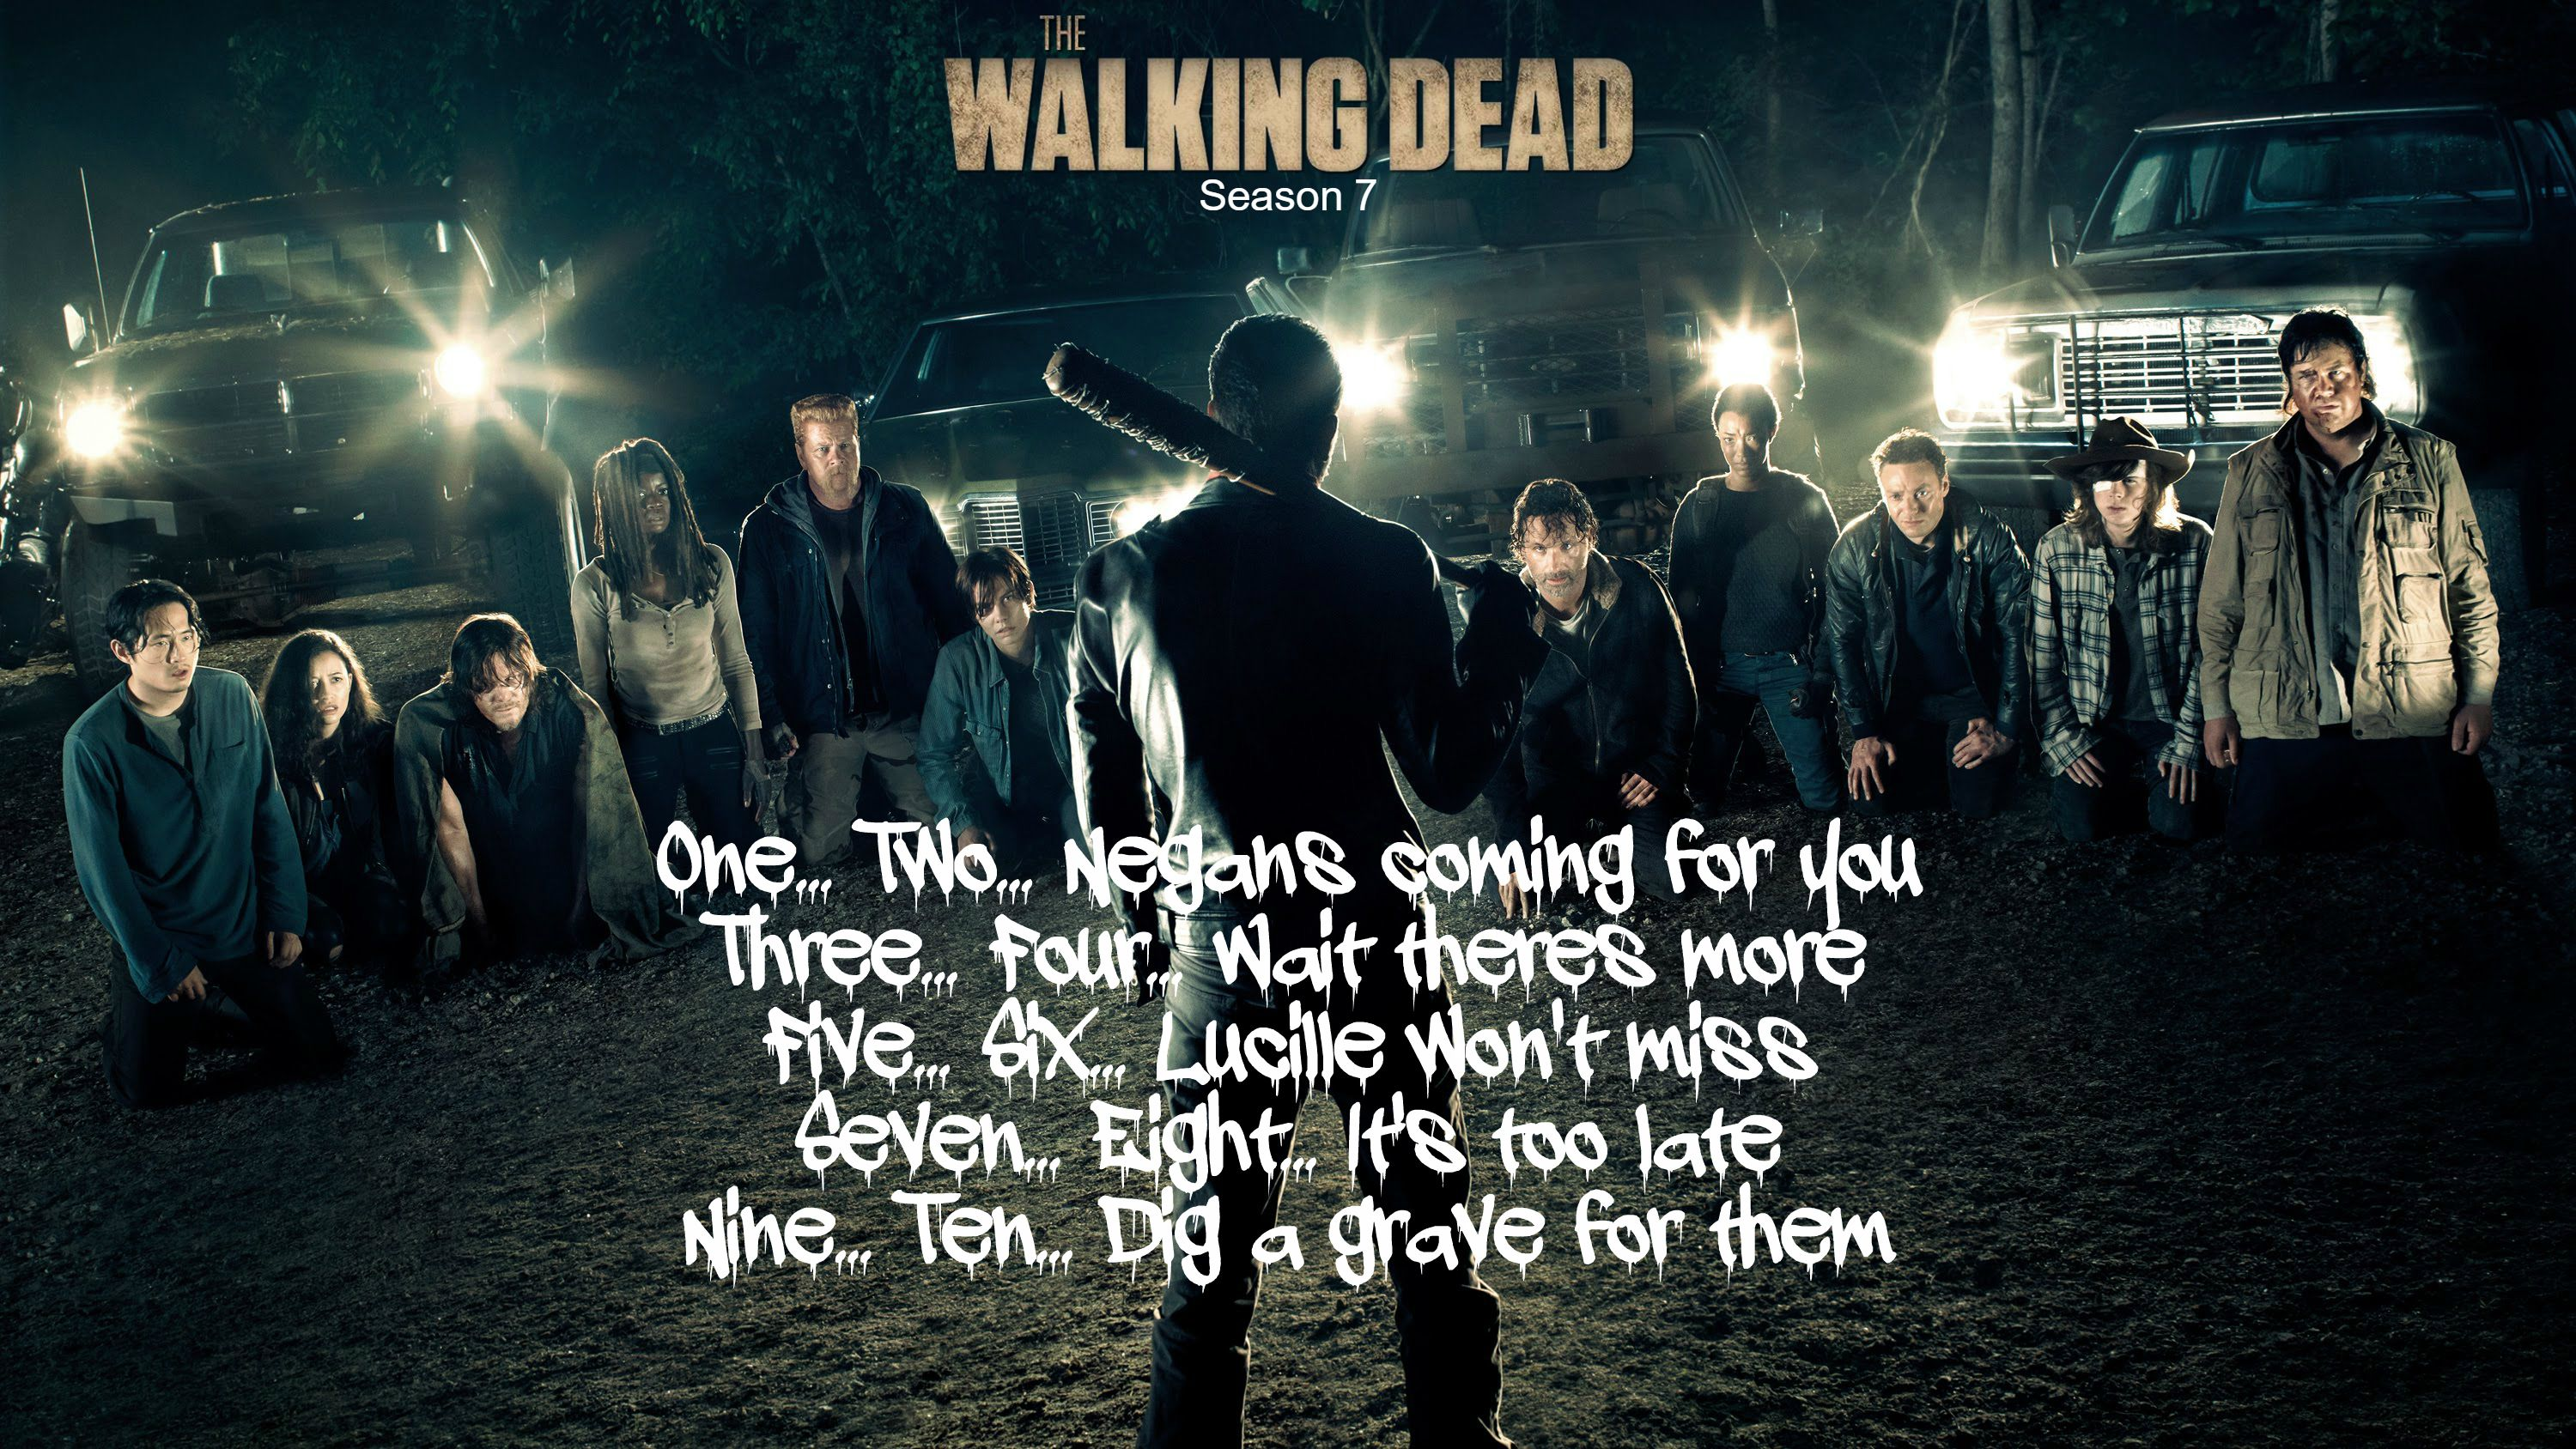 Pin By Panna On Geburtstag The Walking Dead Walking Dead Background Walking Dead Wallpaper